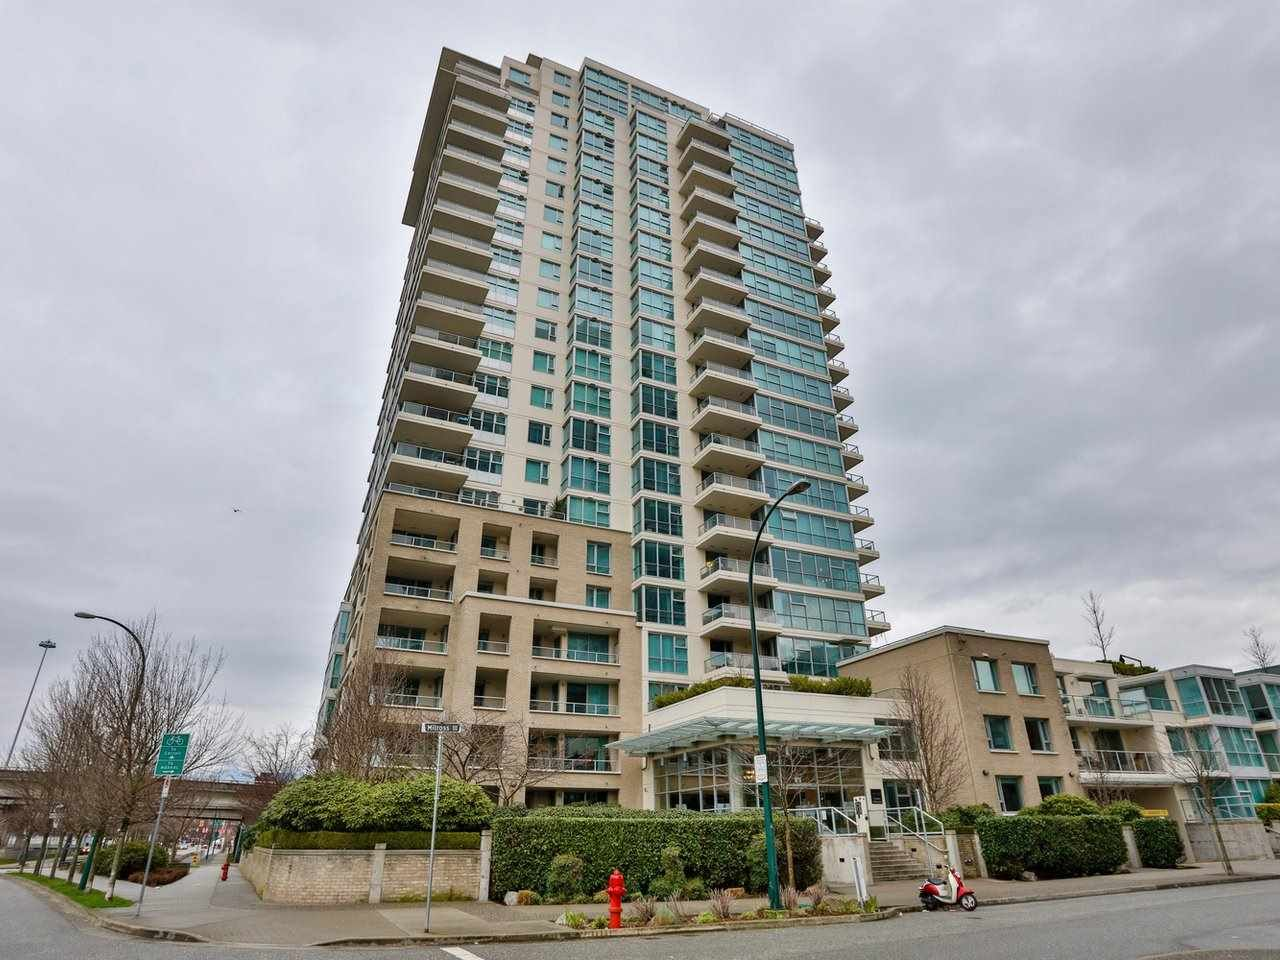 Main Photo: 604 125 MILROSS AVENUE in Vancouver: Downtown VE Condo for sale (Vancouver East)  : MLS®# R2436214